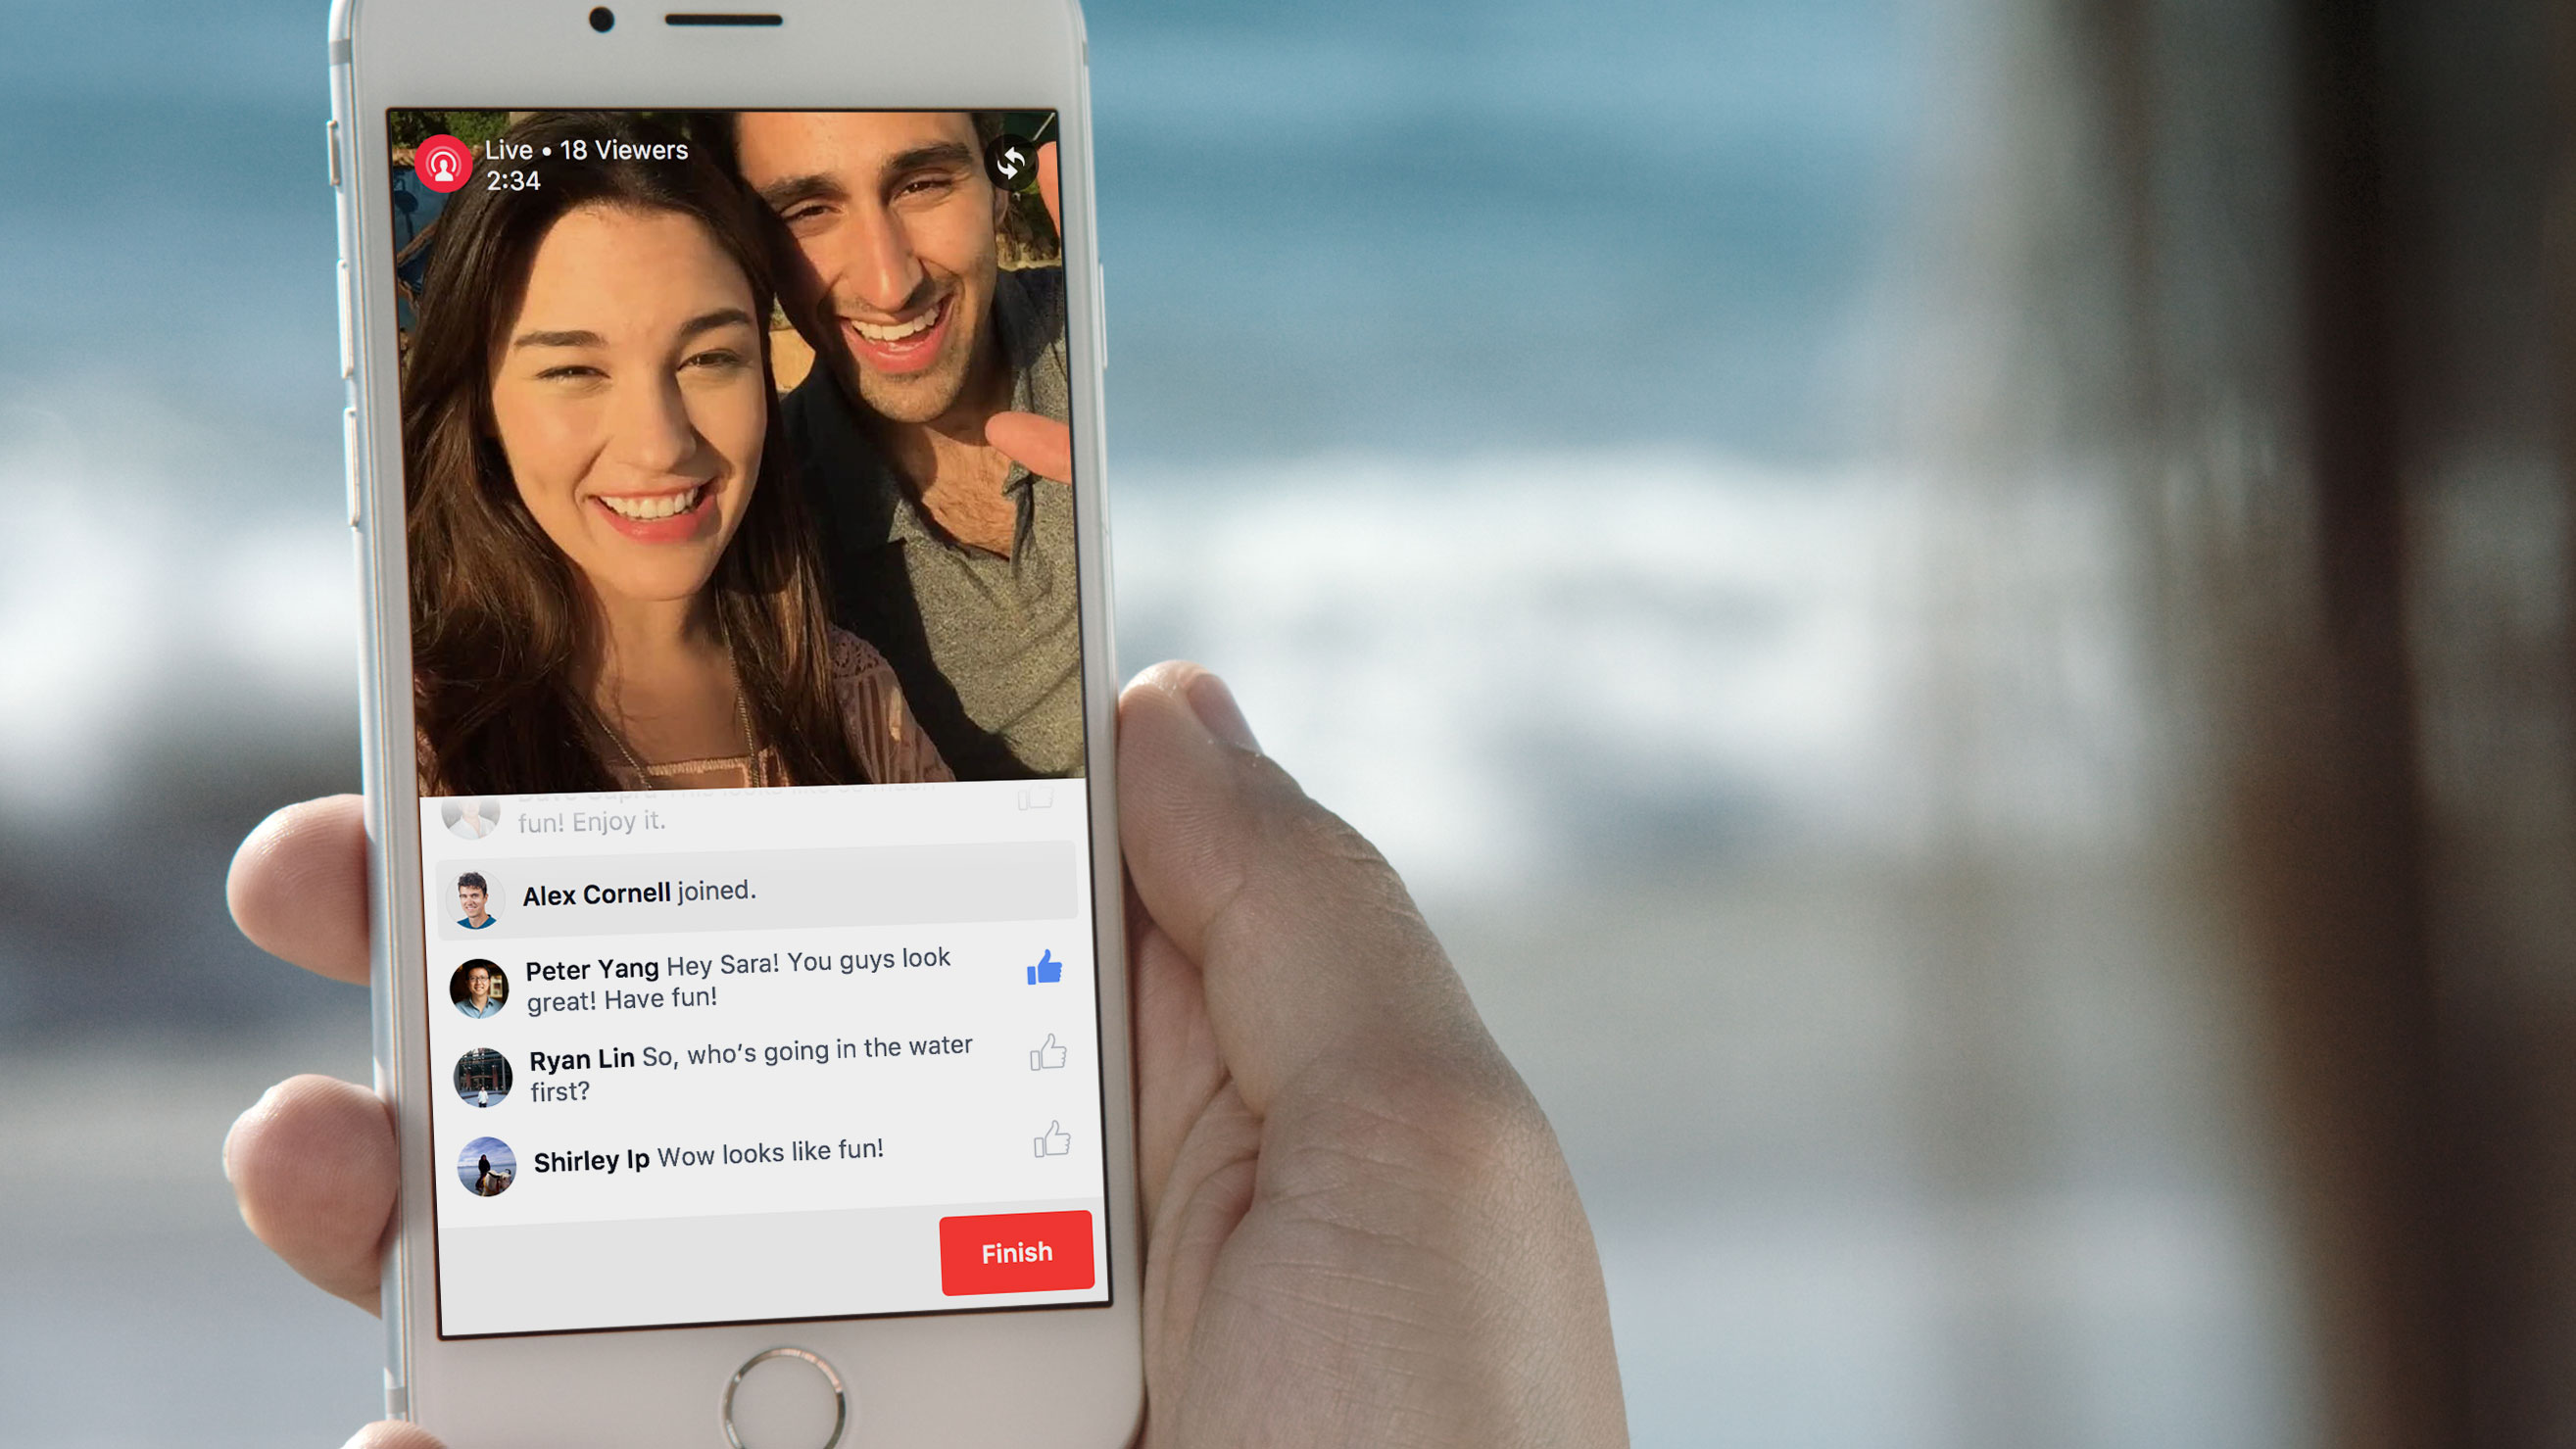 Facebook live video real time social media